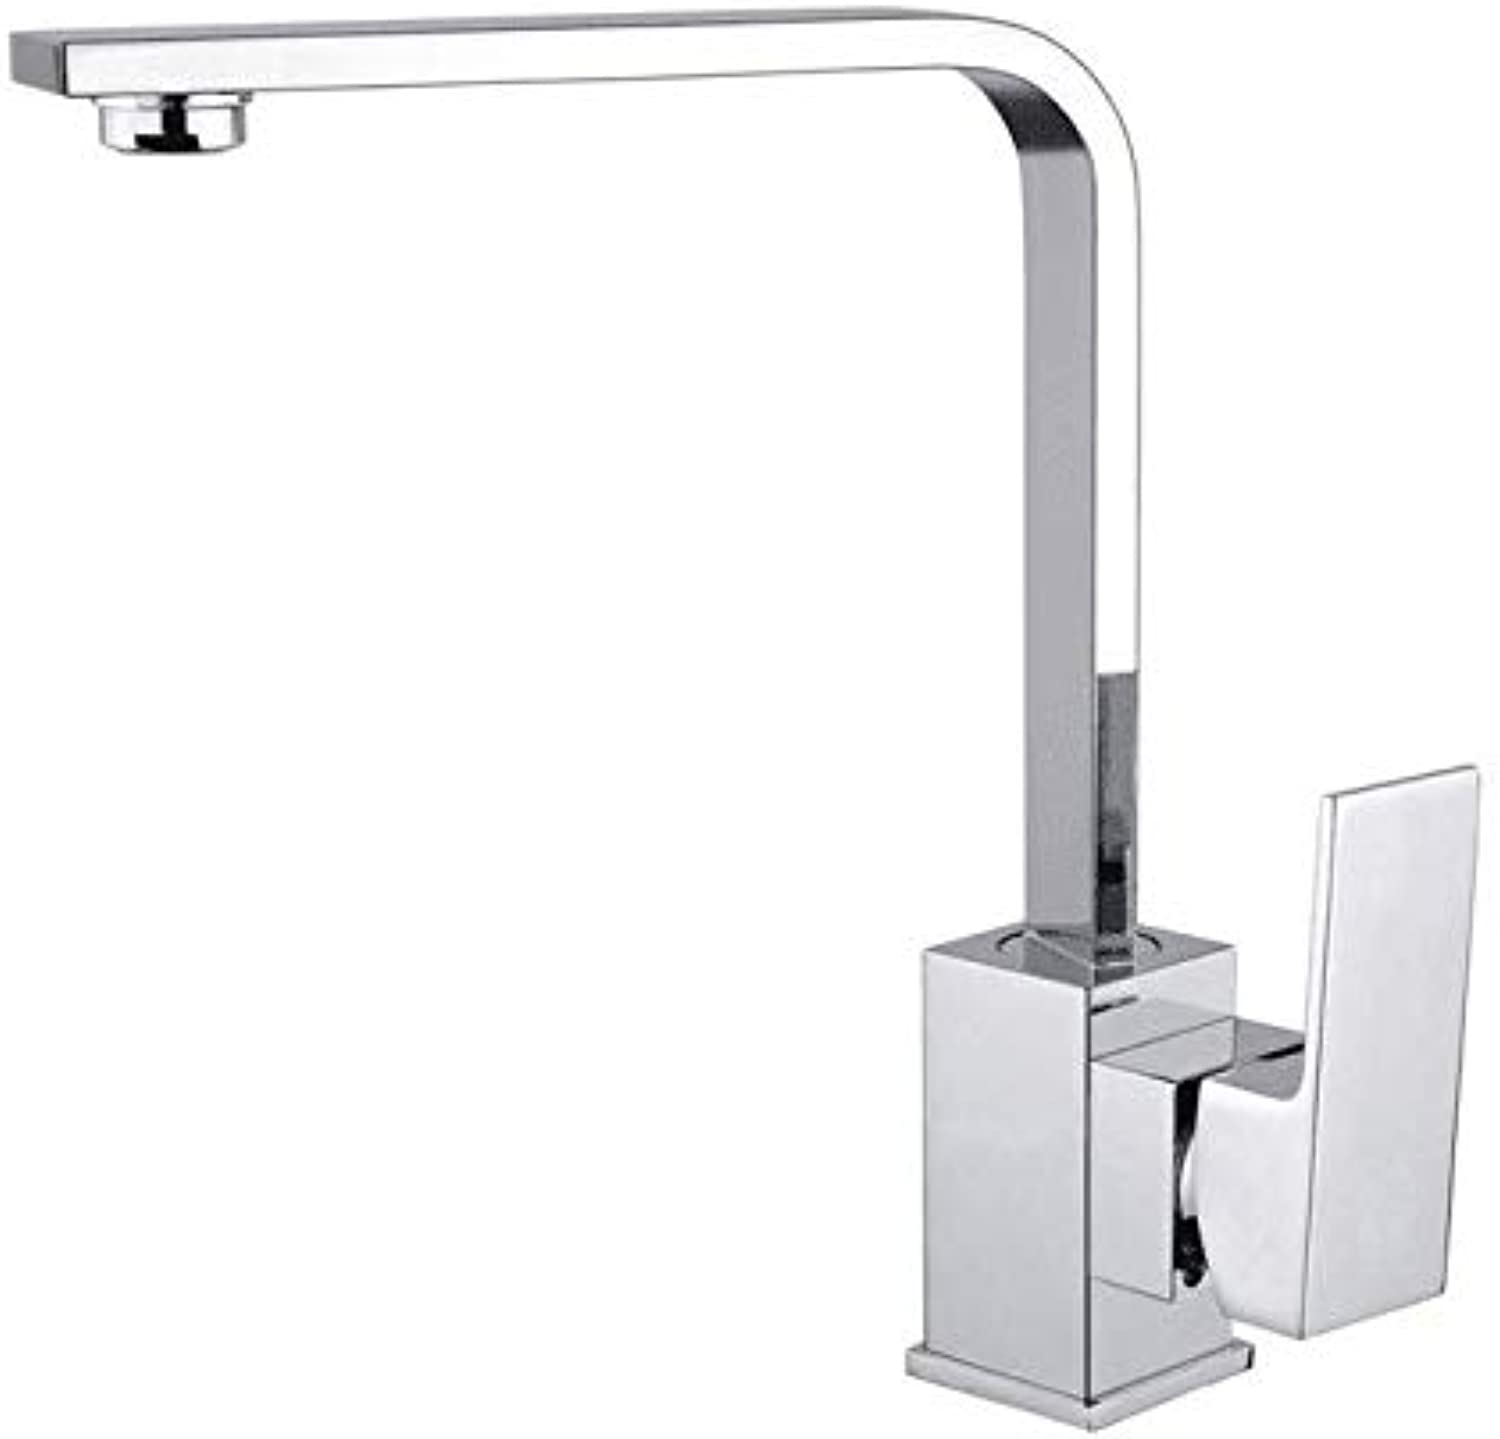 Basin Faucet Bathroom Sink Tap All Copper Mixing Water Faucet Kitchen Hot and Cold Dish Basin Faucet Faucet Faucet